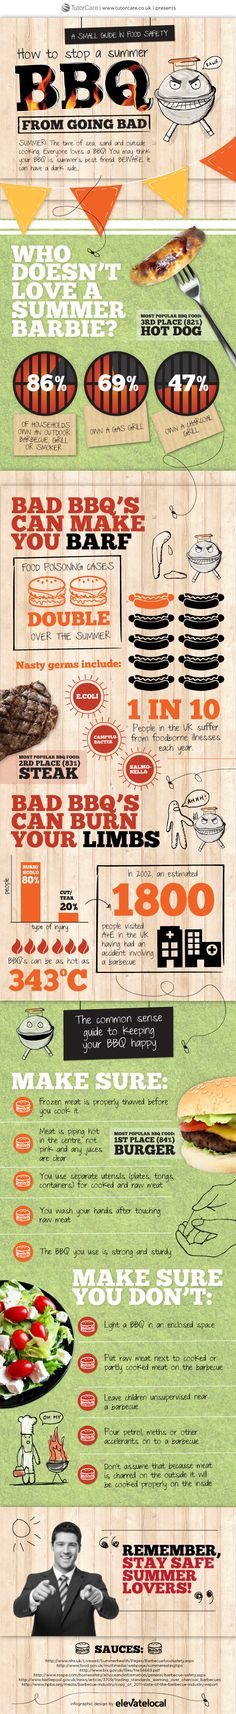 How to Stop a Summer BBQ from Going Bad (Infographic)